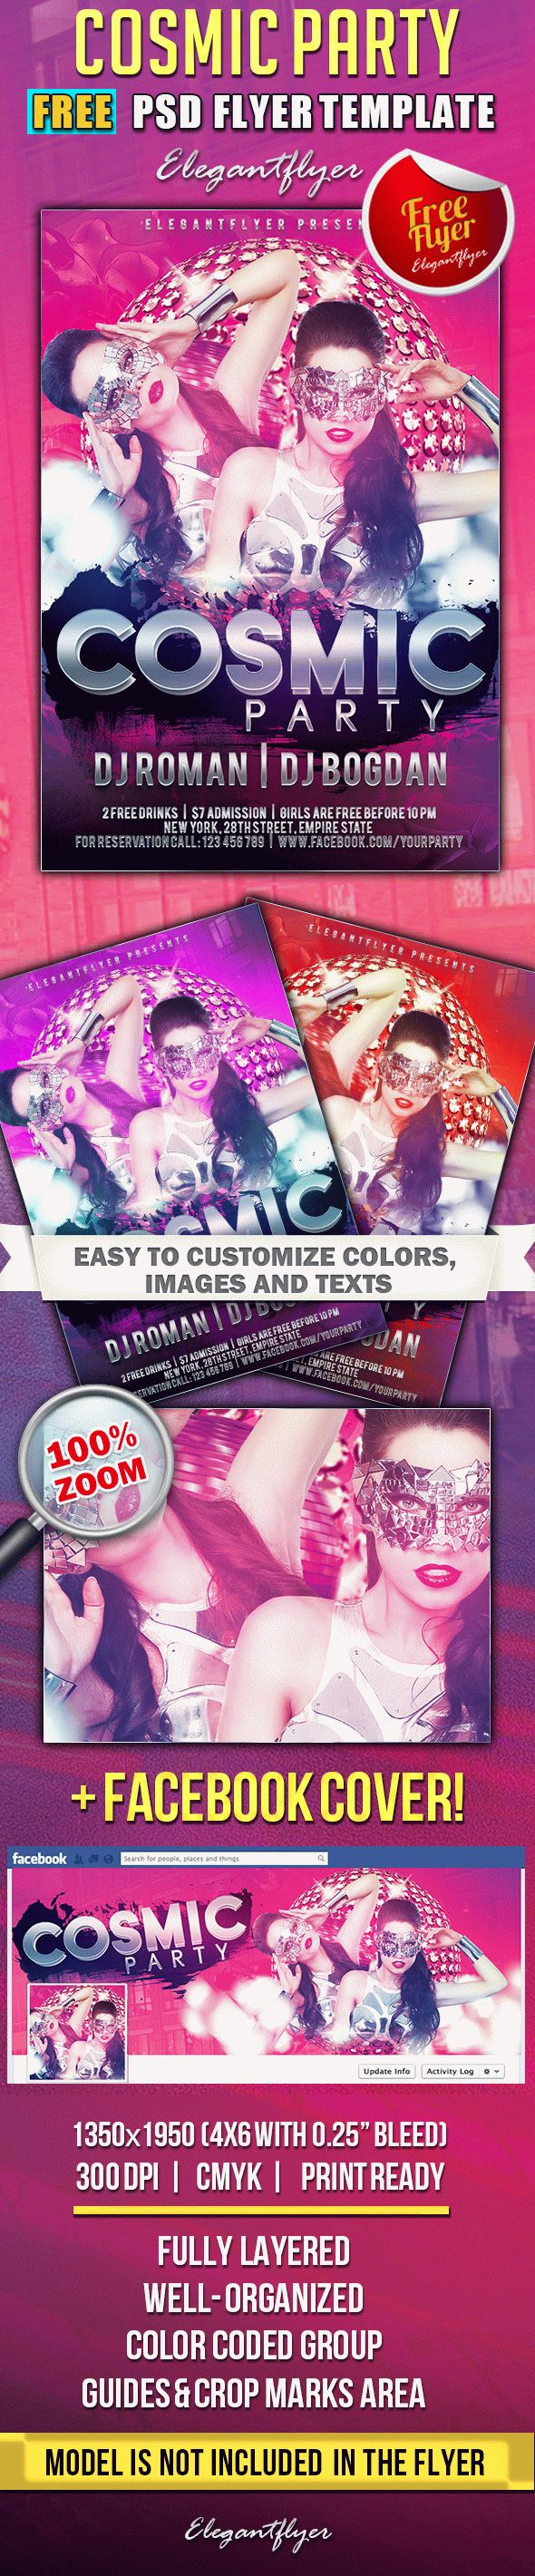 Cosmic Party – Free Flyer PSD Template + Facebook Cover